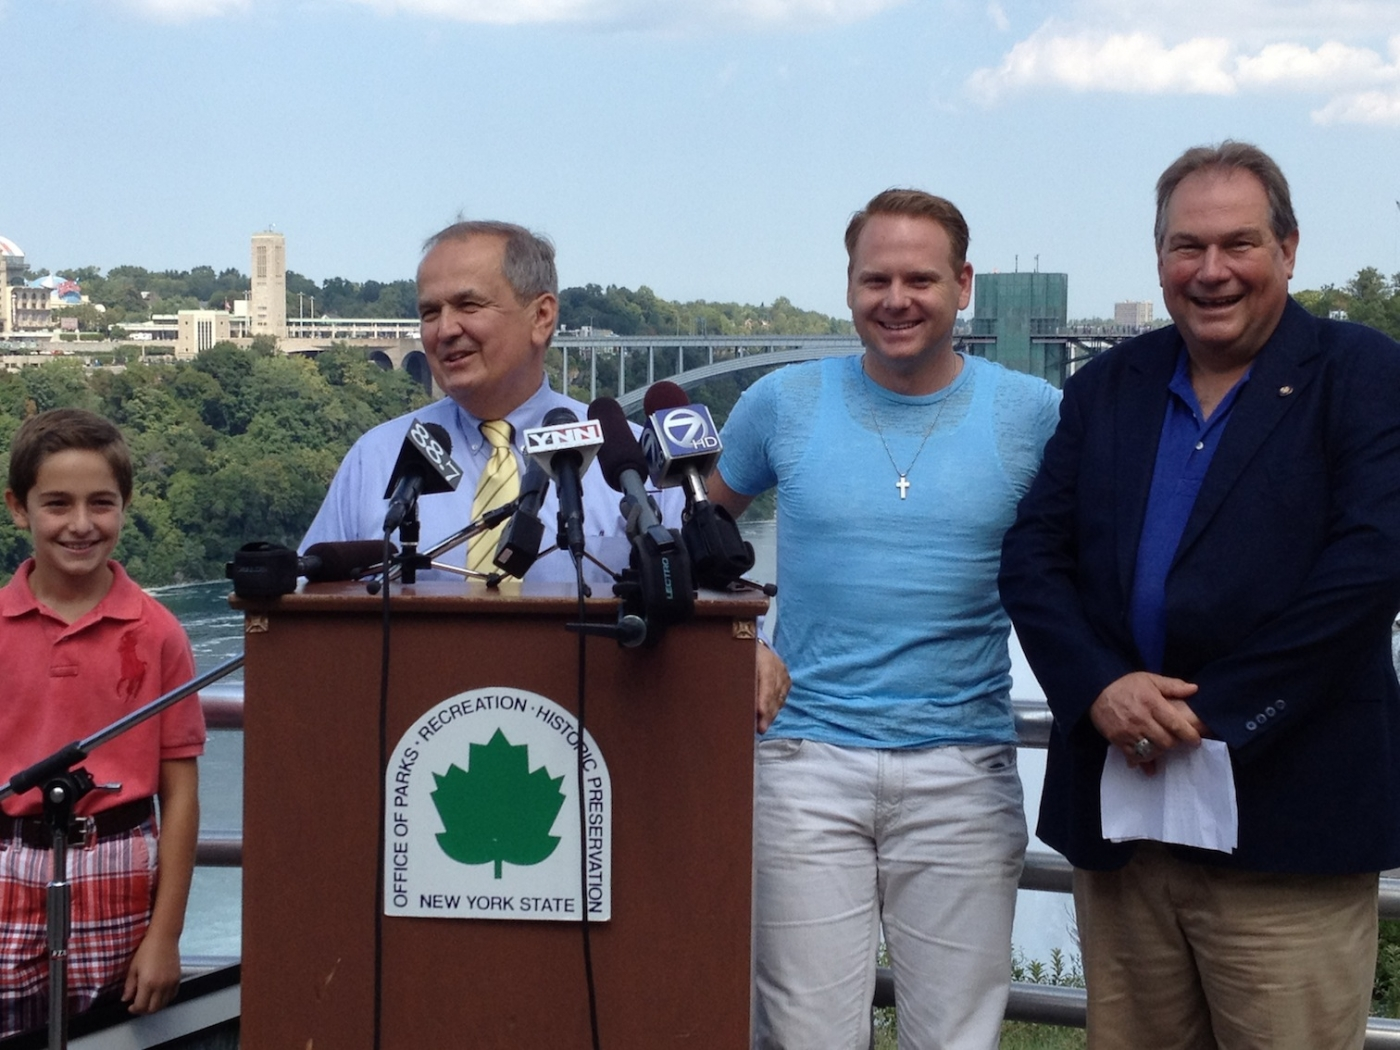 Nik Wallenda was joined by State Sen. George Maziarz (left) and Assemblyman John Ceretto in his return to Niagara Falls. (photo by Joshua Maloni)